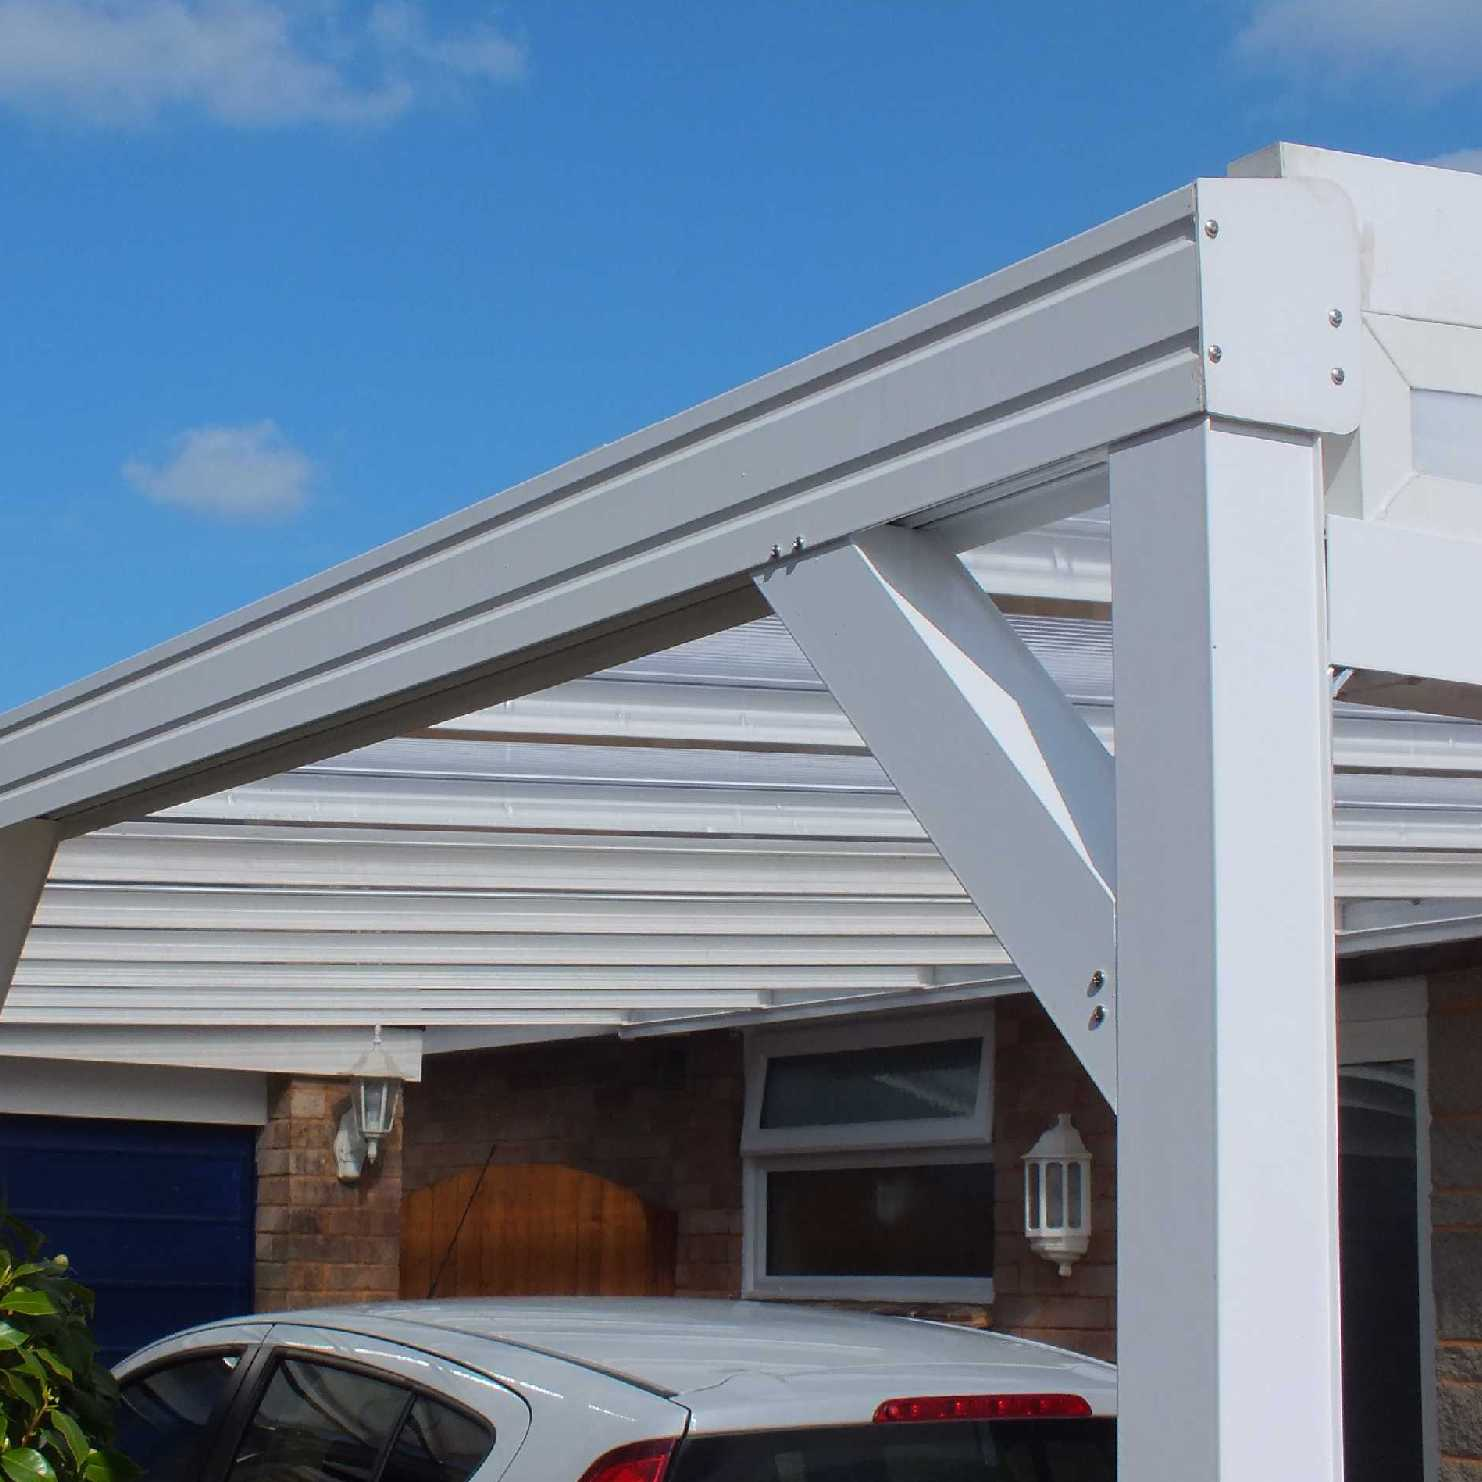 Buy Omega Smart White Lean-To Canopy with 16mm Polycarbonate Glazing - 12.0m (W) x 2.0m (P), (5) Supporting Posts online today